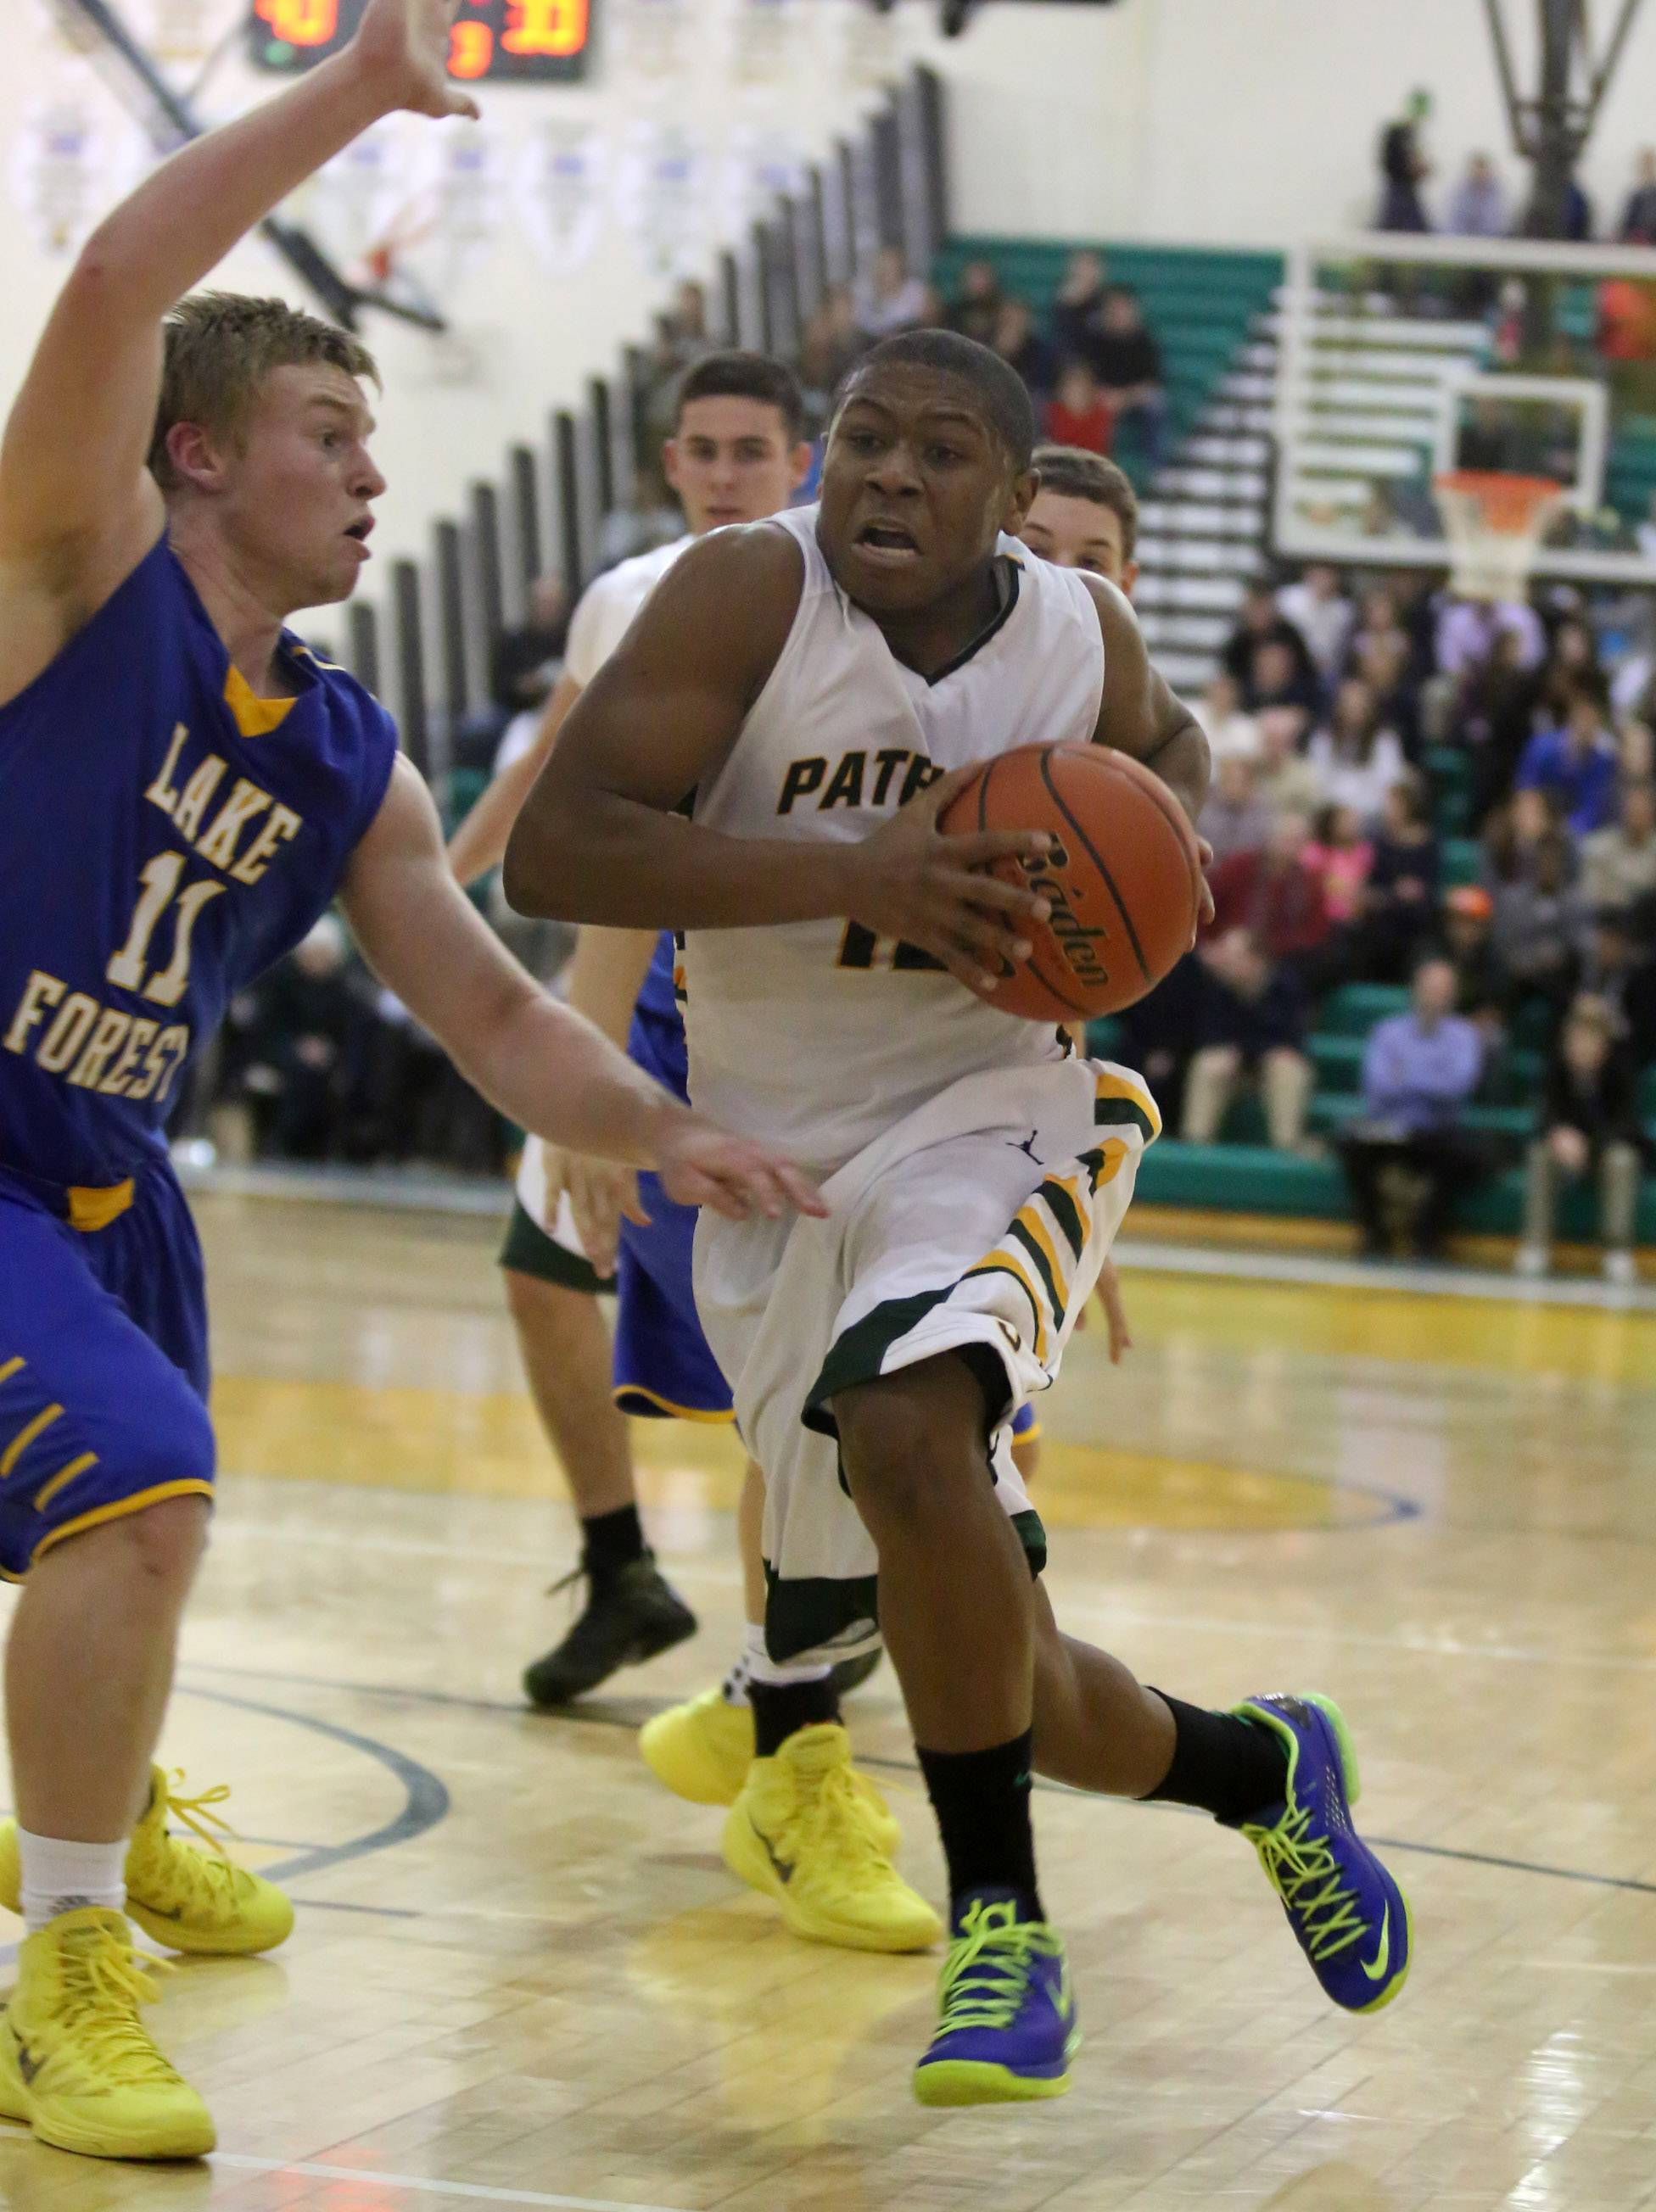 Stevenson forward Matt Johnson drives to the basket against Lake Forest defender Jack Traynor.